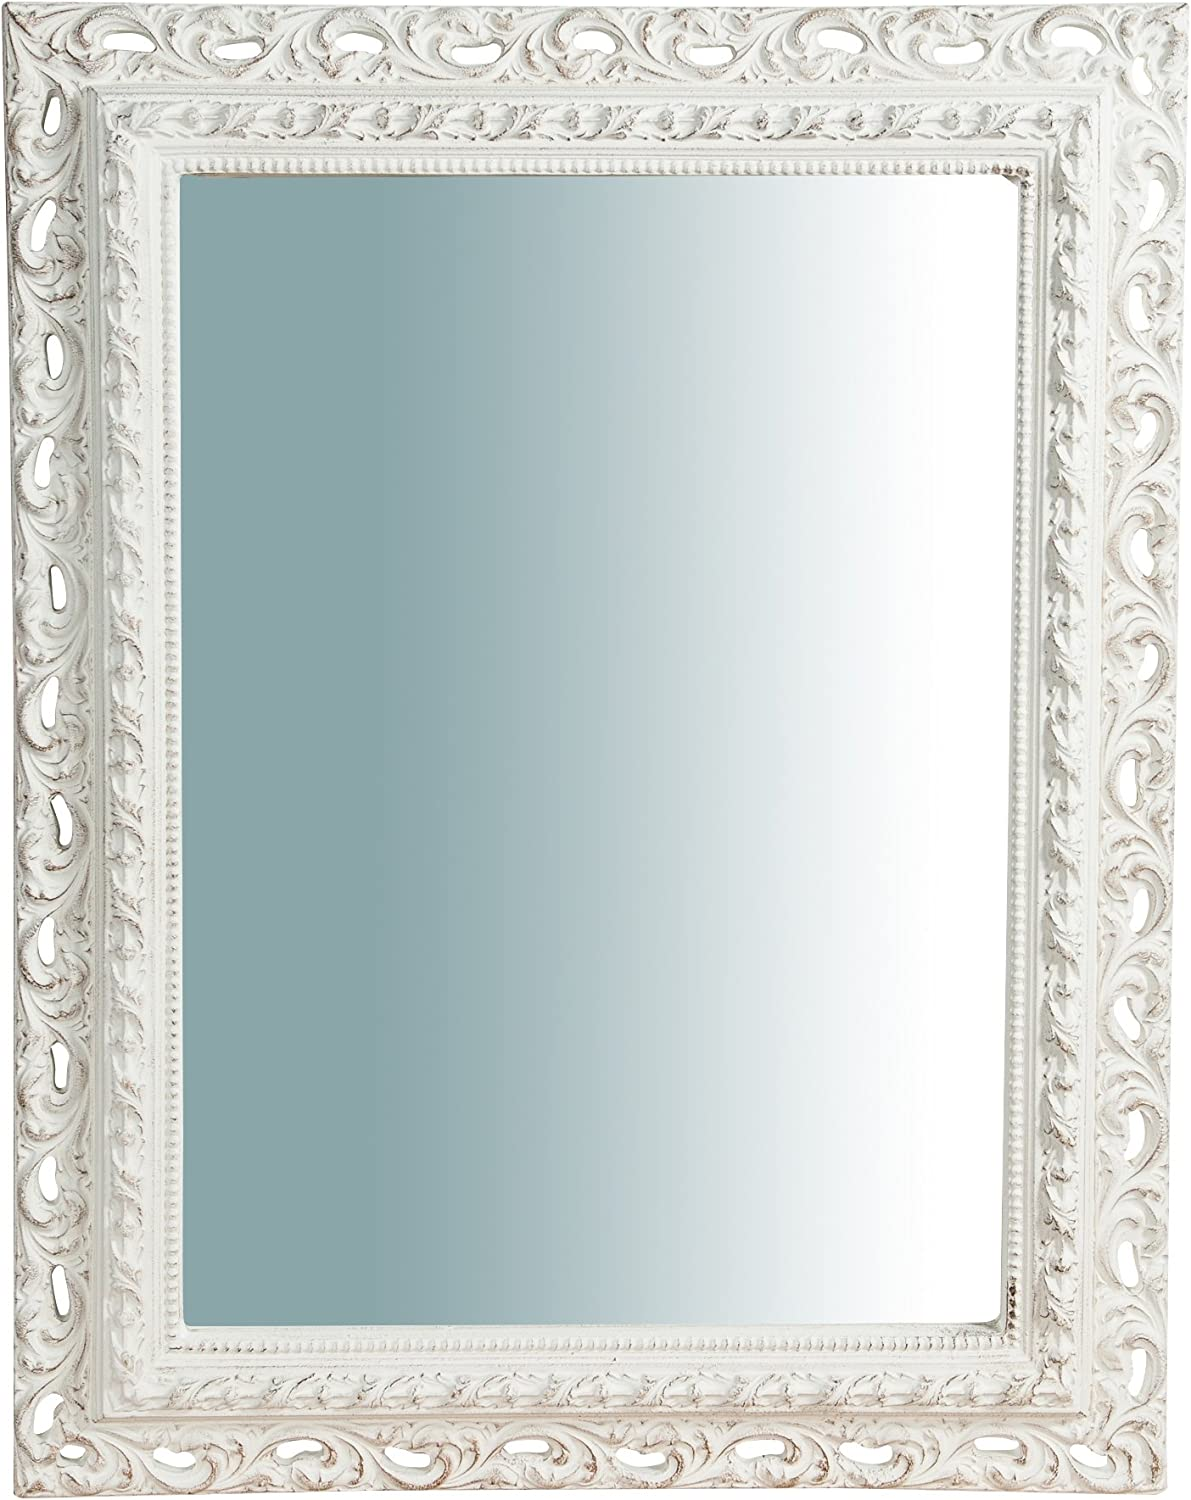 W70xDP5xH90 cm Sized Made in  Wood Made White Finish Wall Mirror greenical Horizontal Setting